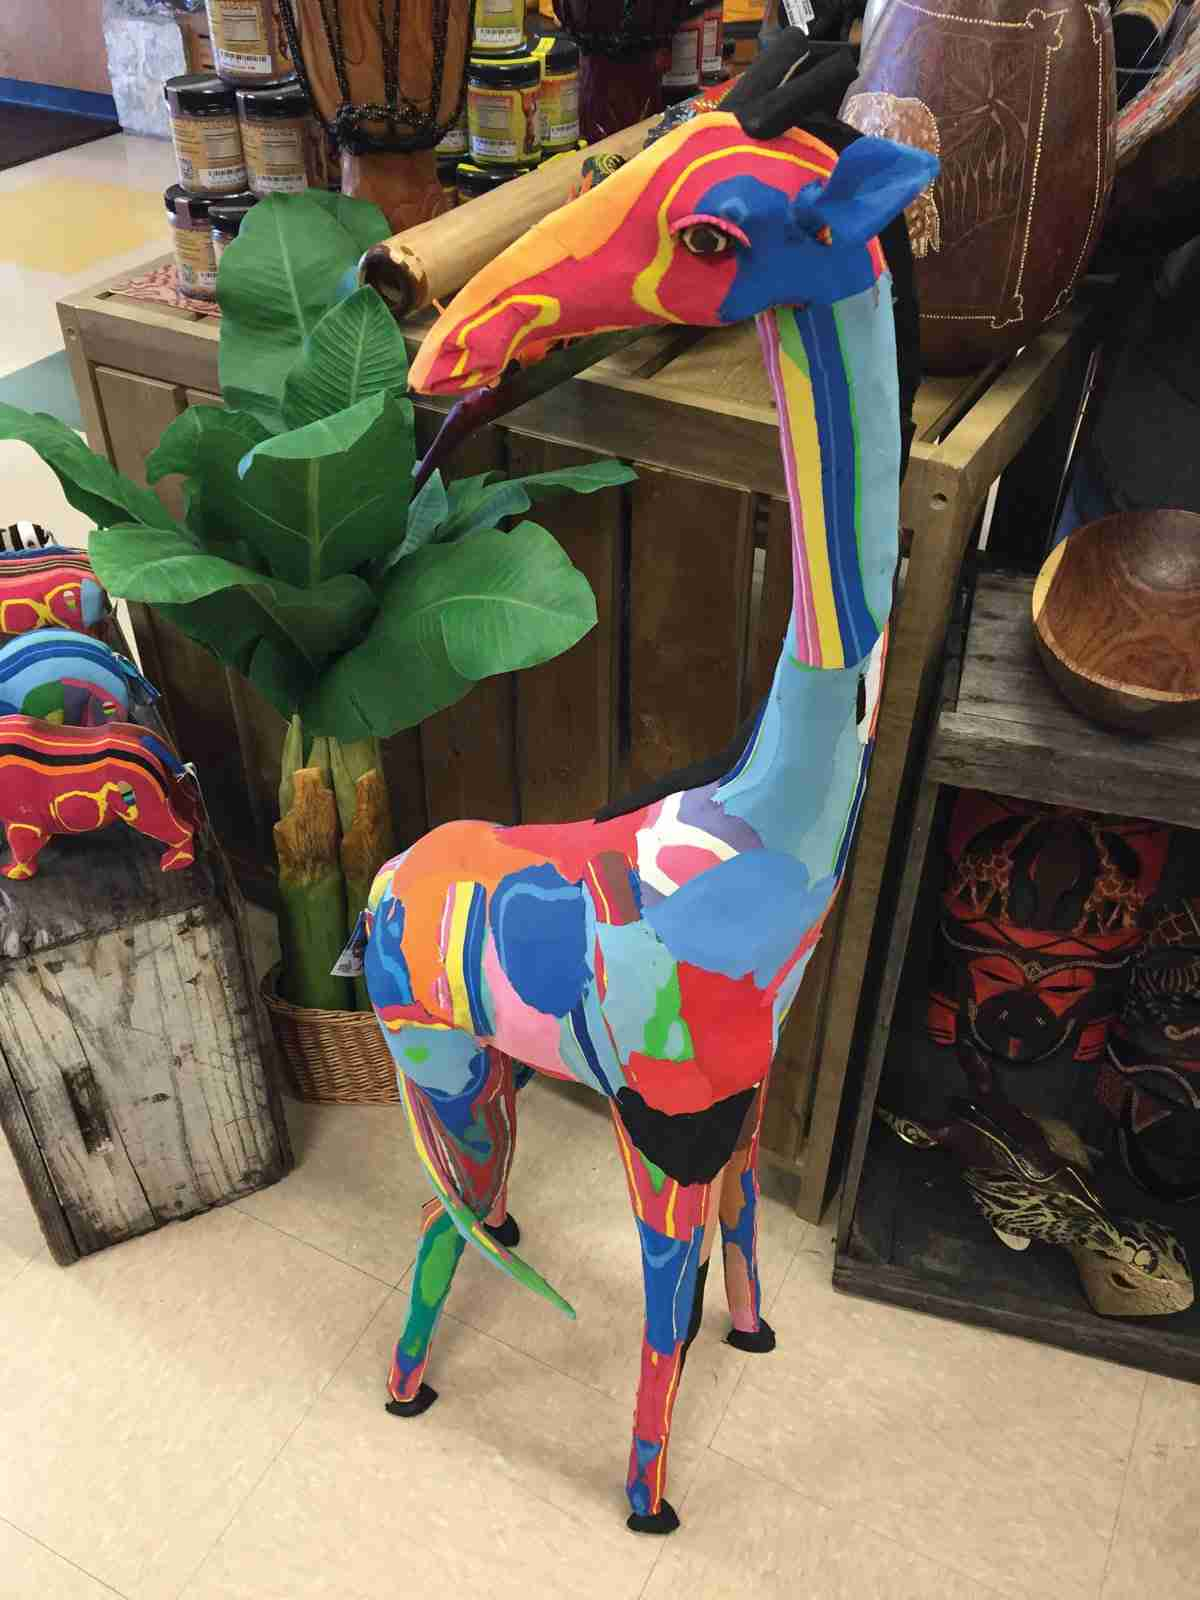 The Abilene Zoo is gearing up for the launch of a Giraffe Safari exhibit in 2016 and giraffe merchandise will be part of the gift store's inventory.